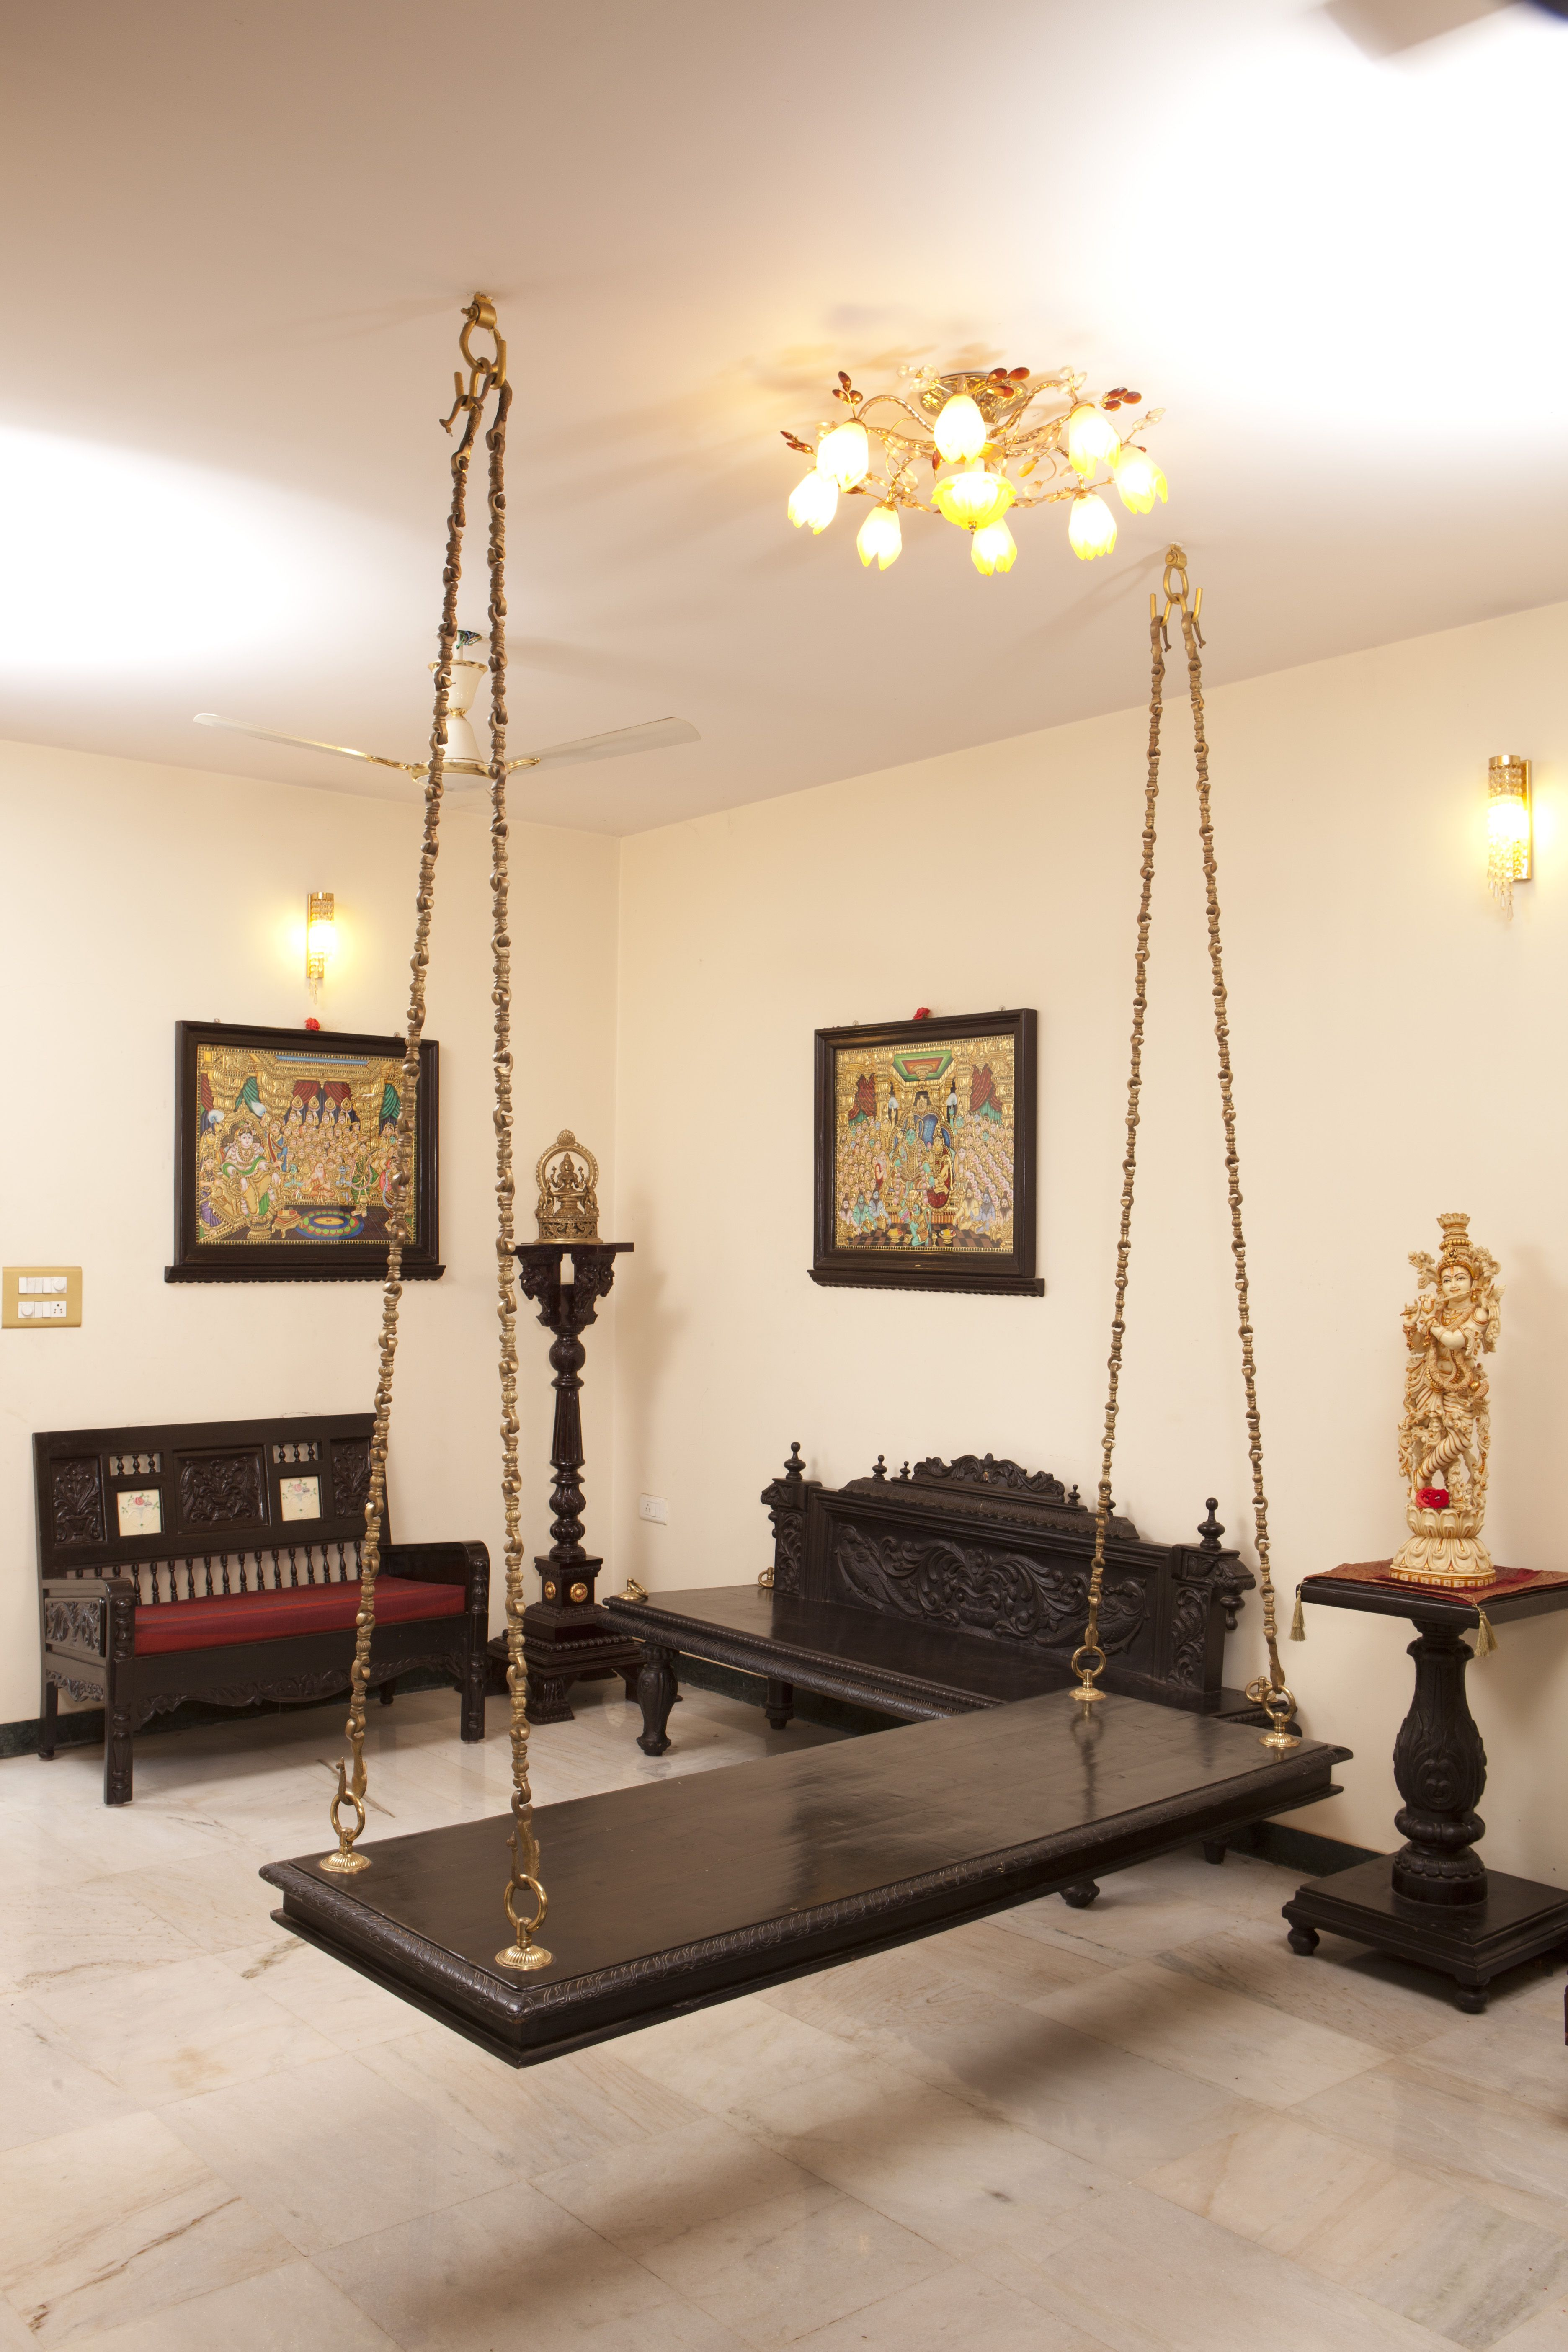 Indian interiors   jhula swing  this kind of polish and design swing are  primarily found in housesjhula swing  this kind of polish and design swing are primarily  . Indian Home Interior Design For Hall. Home Design Ideas